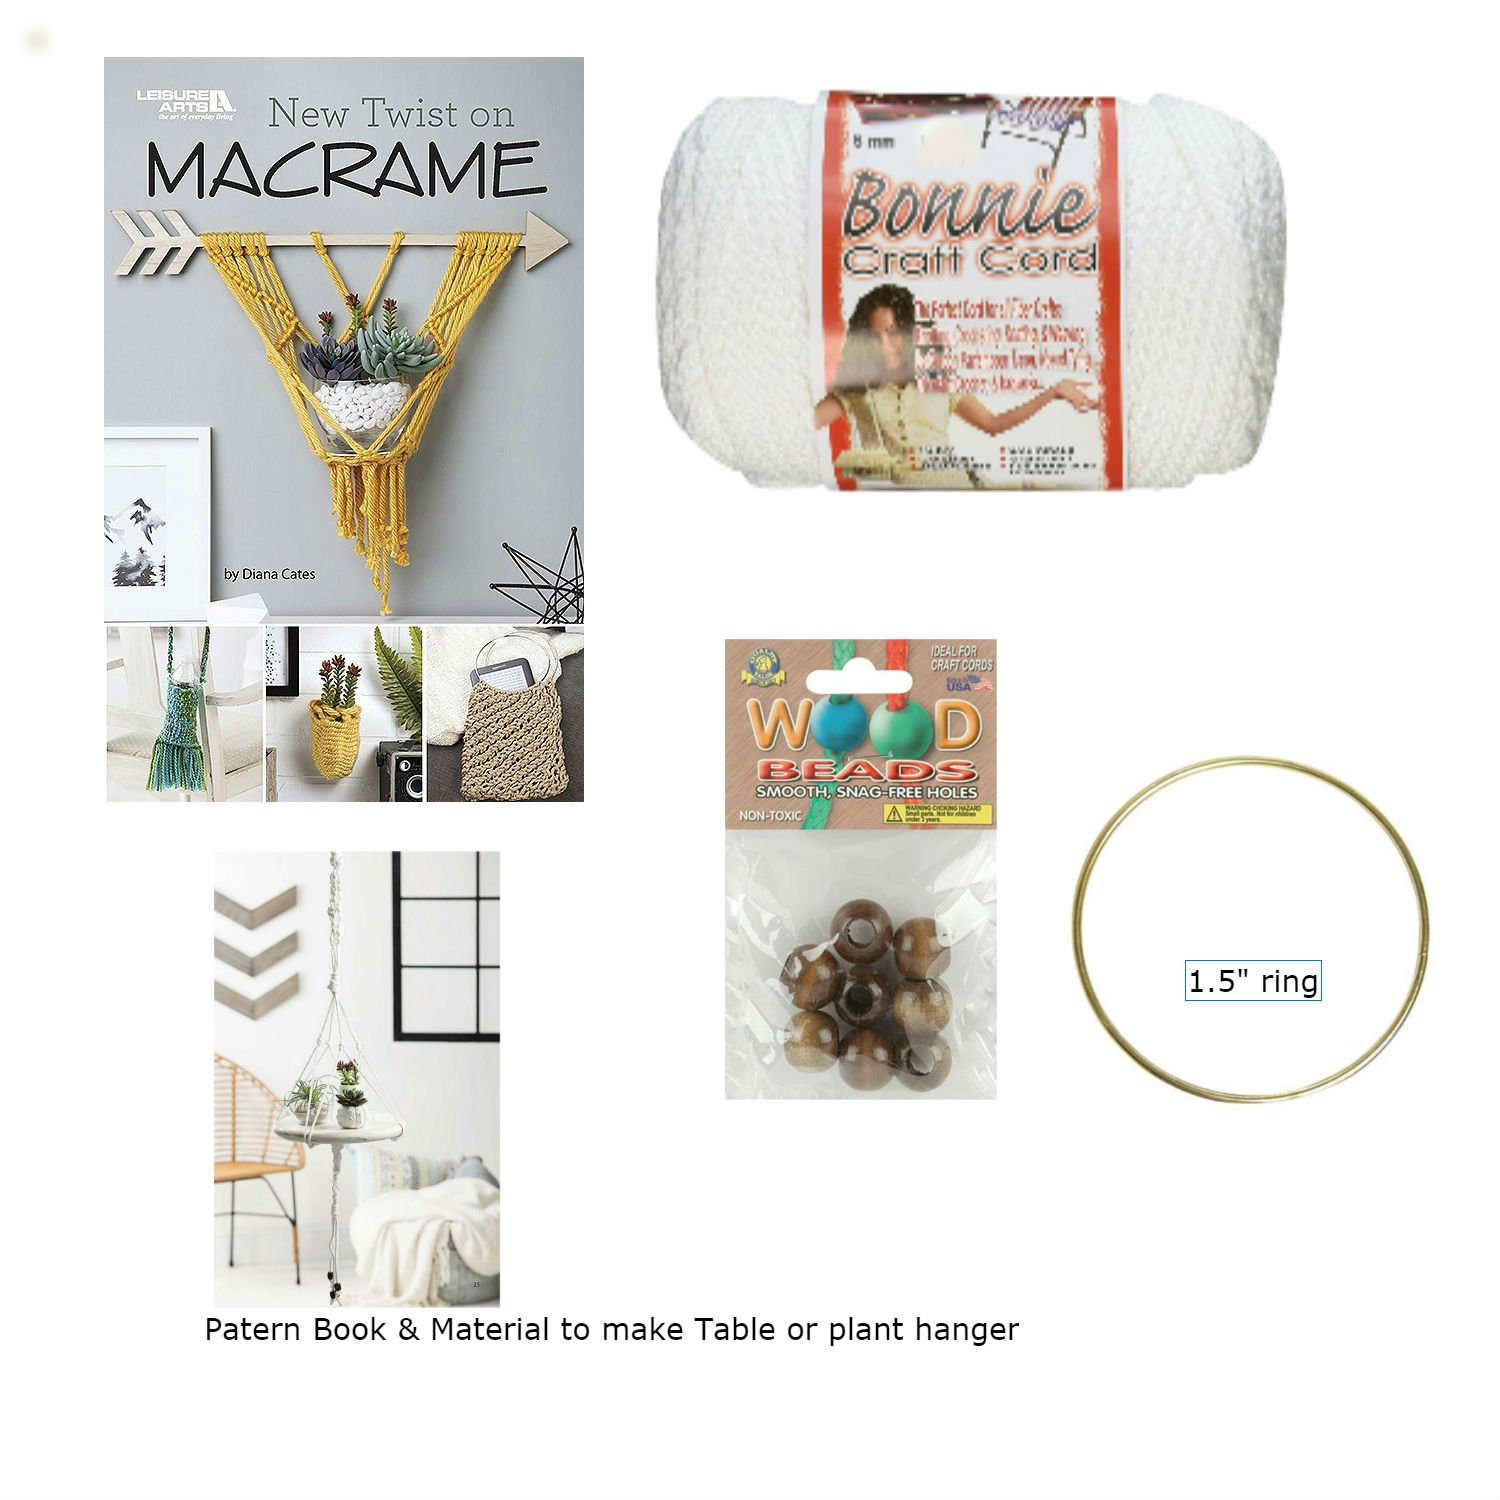 Macrame kit Bundle for Hanging Table or Plant Hanger with Macrame Cord, Wooden Beads, Brass Rings, and ''The New Twist on Macrame'' Booklet